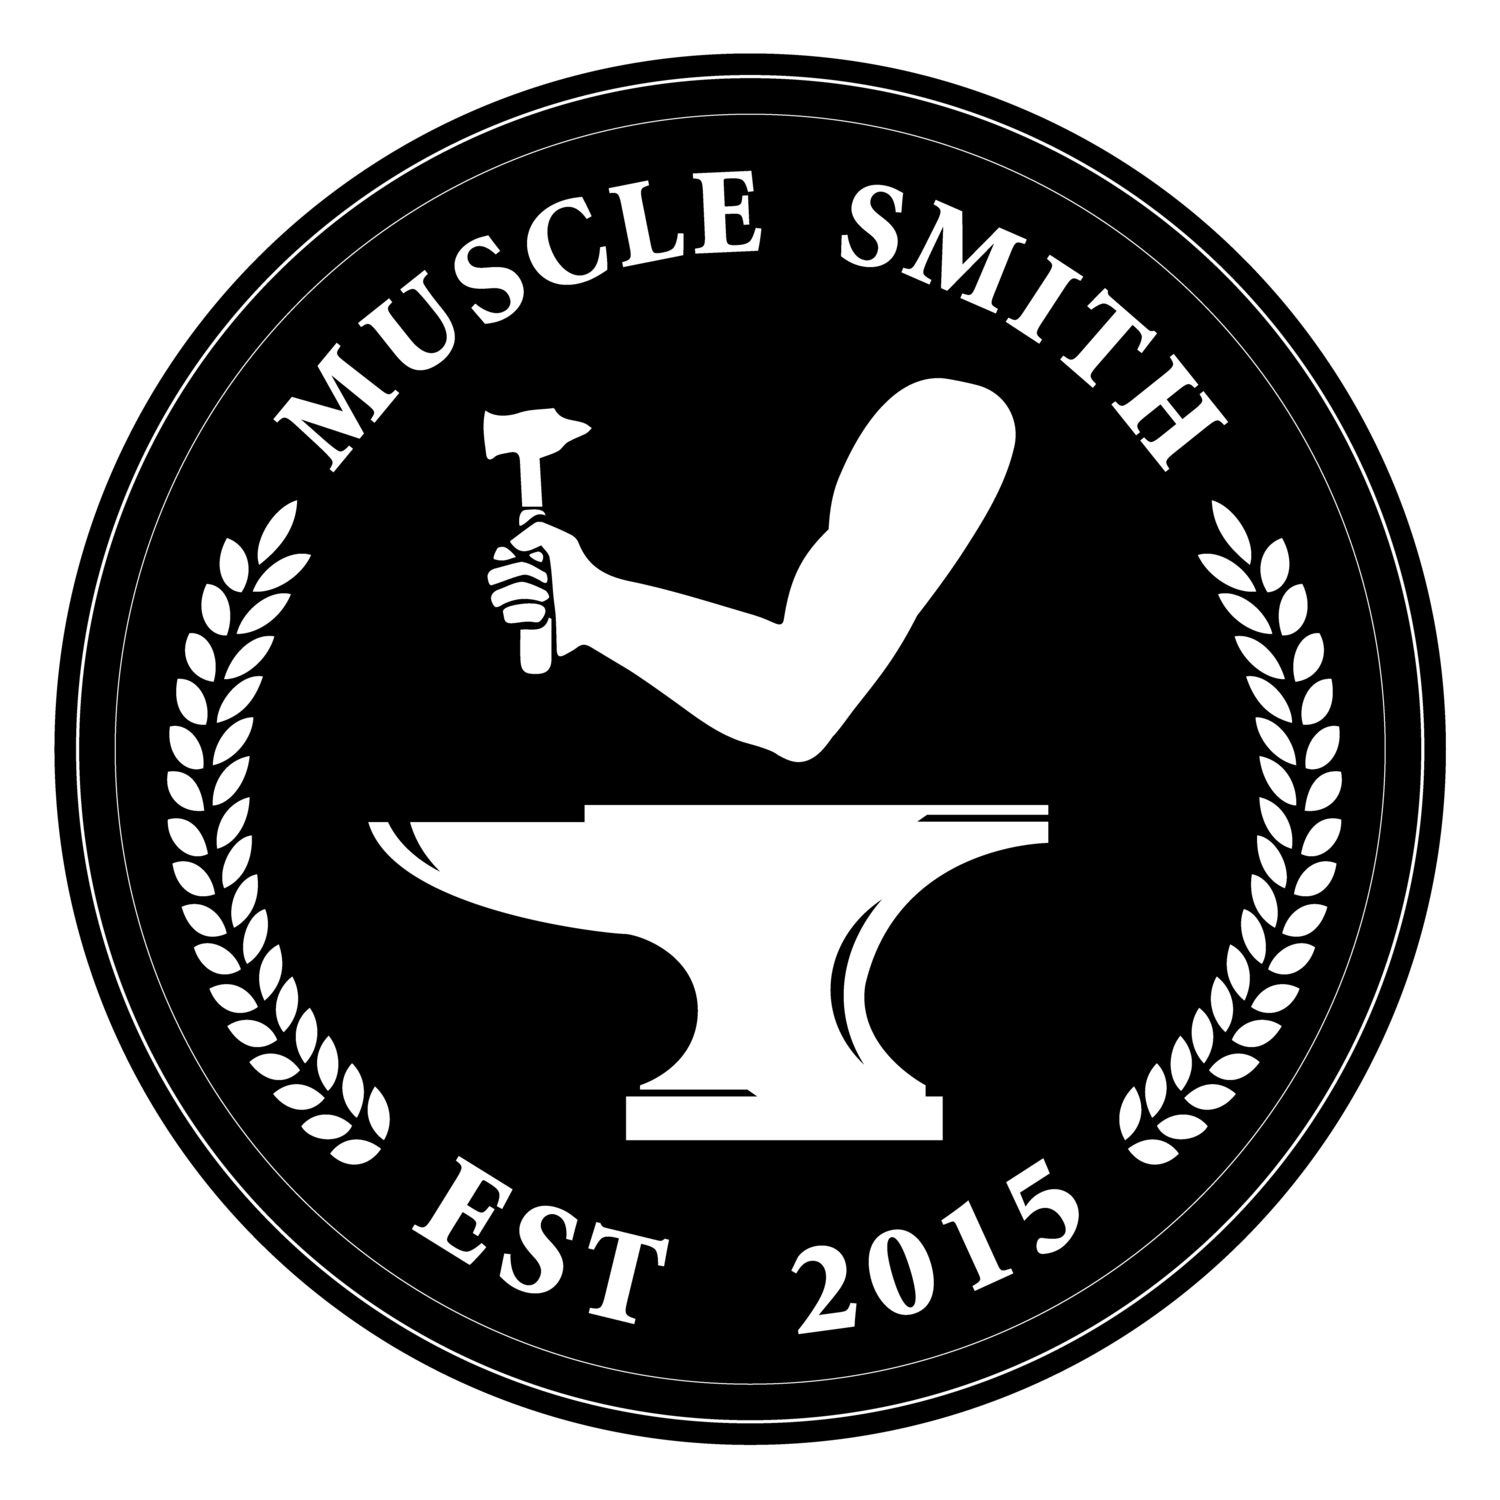 Muscle Smith